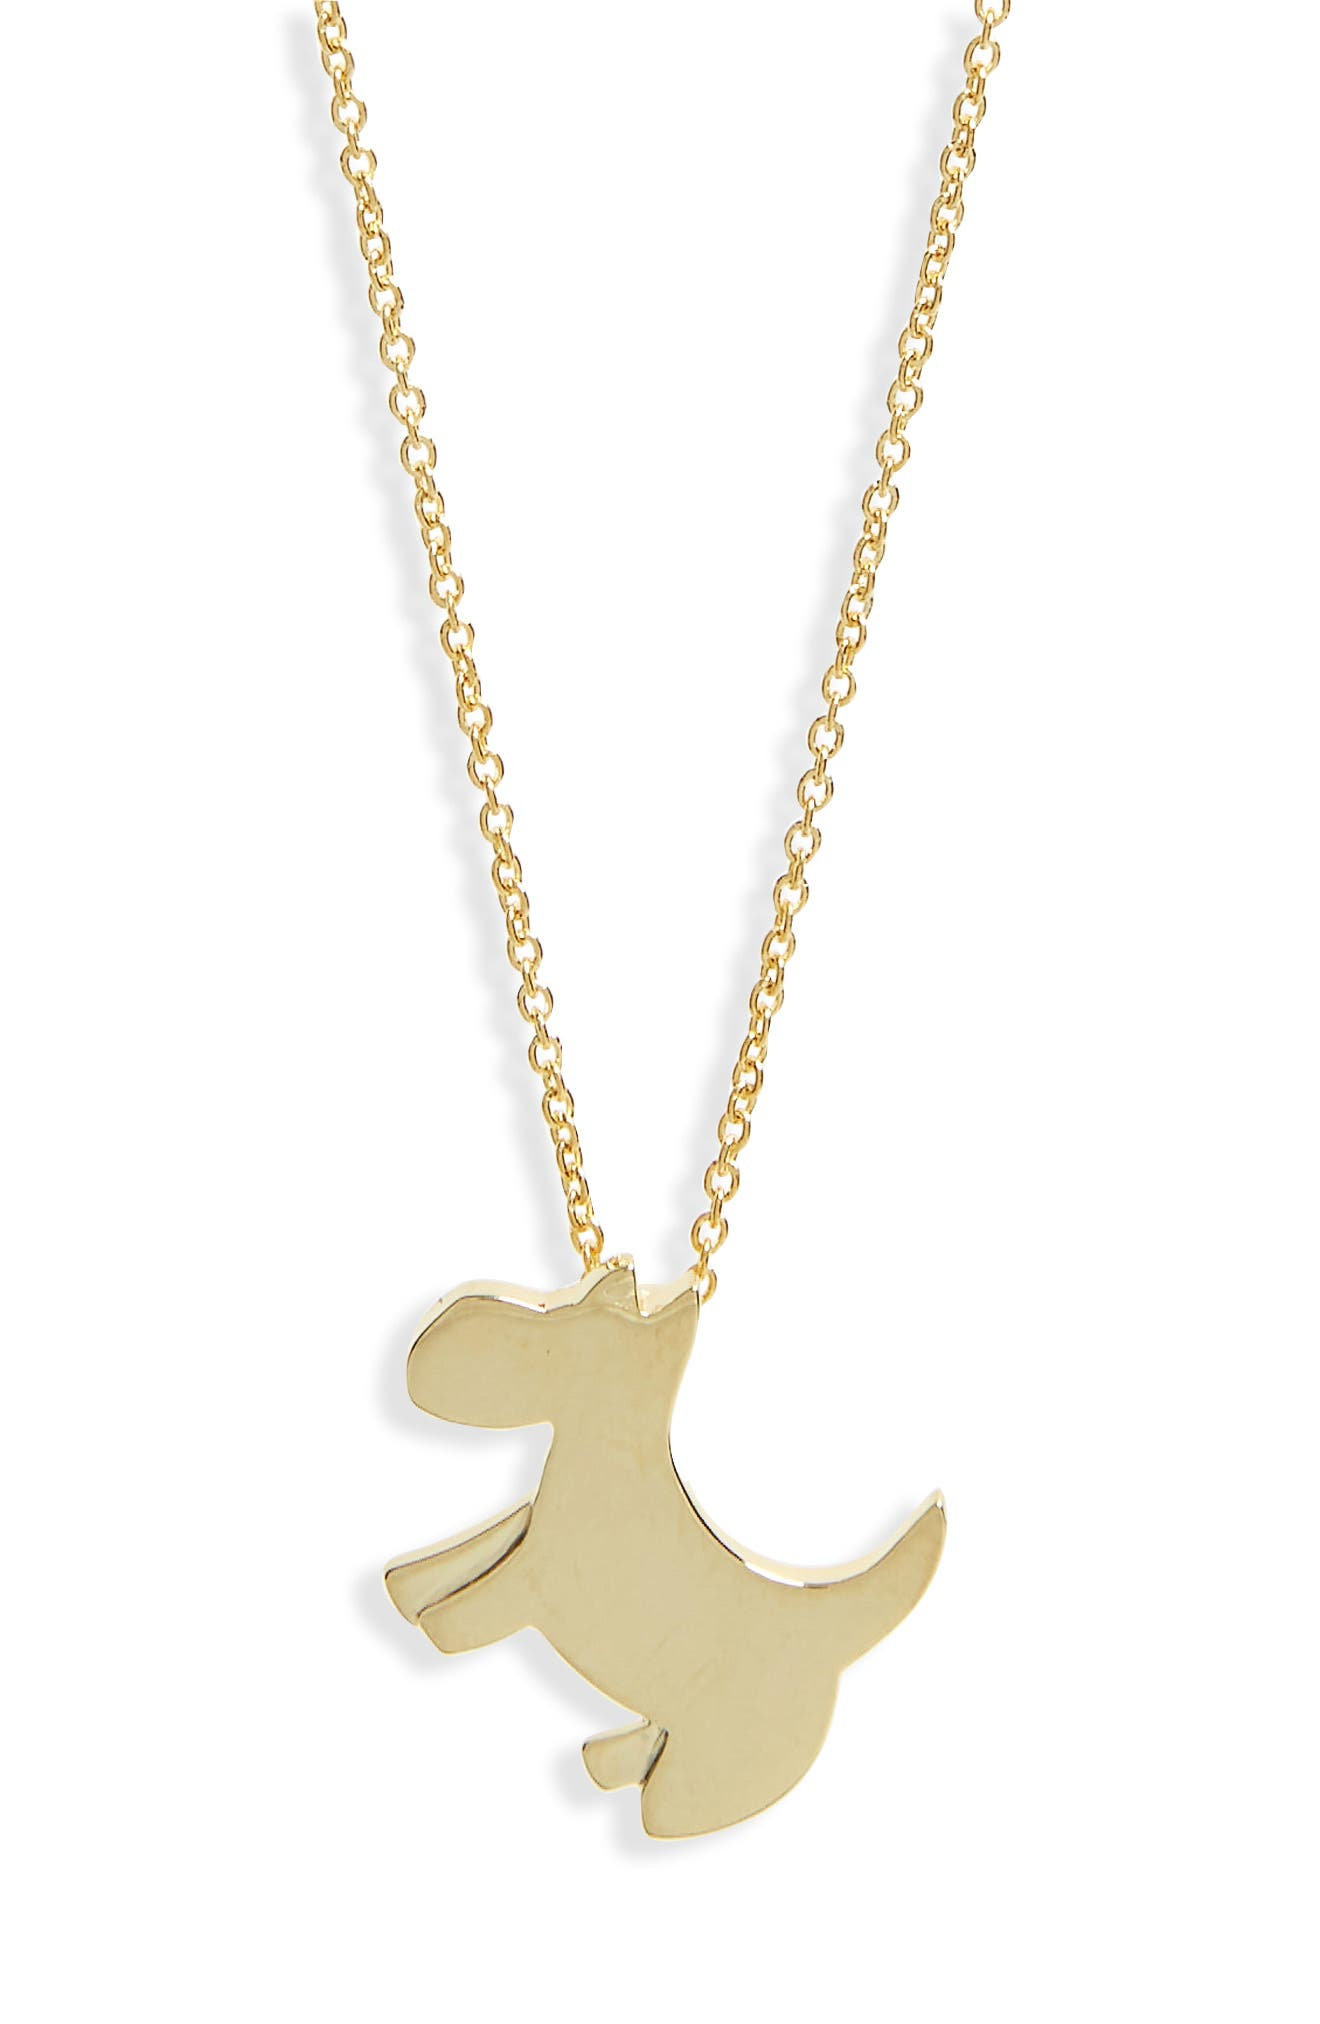 Scottie Dog Necklace,                         Main,                         color, Yellow Gold